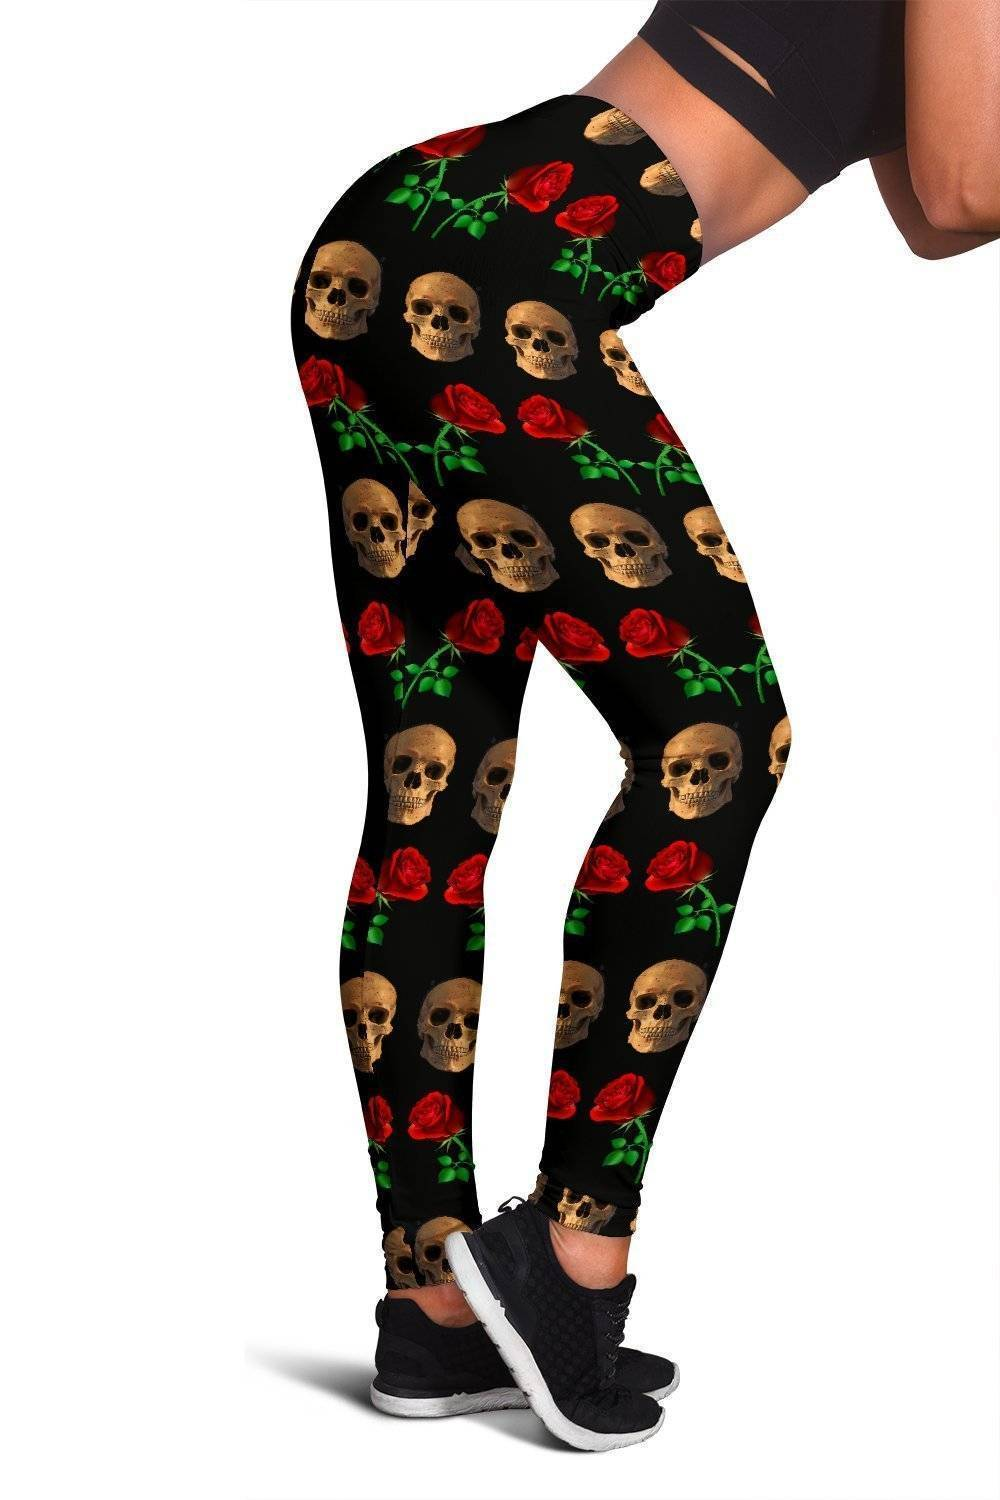 Roses and Skulls Leggings for Skull Lovers  -  Women's Leggings / XS  -   - SNS Outlet